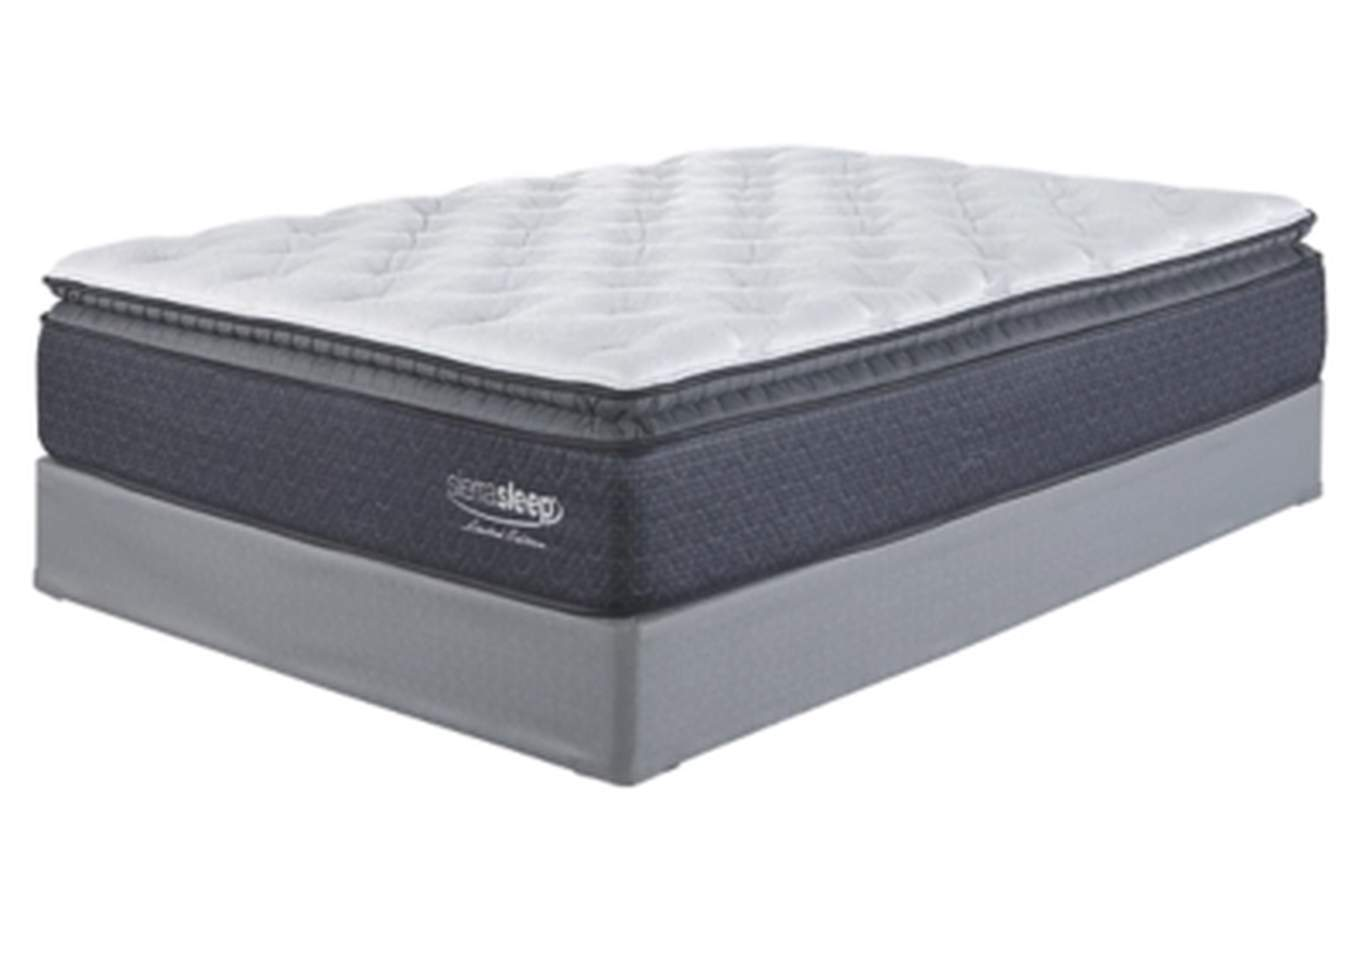 Limited Edition Pillowtop White Twin Mattress w/Foundation,Sierra Sleep by Ashley